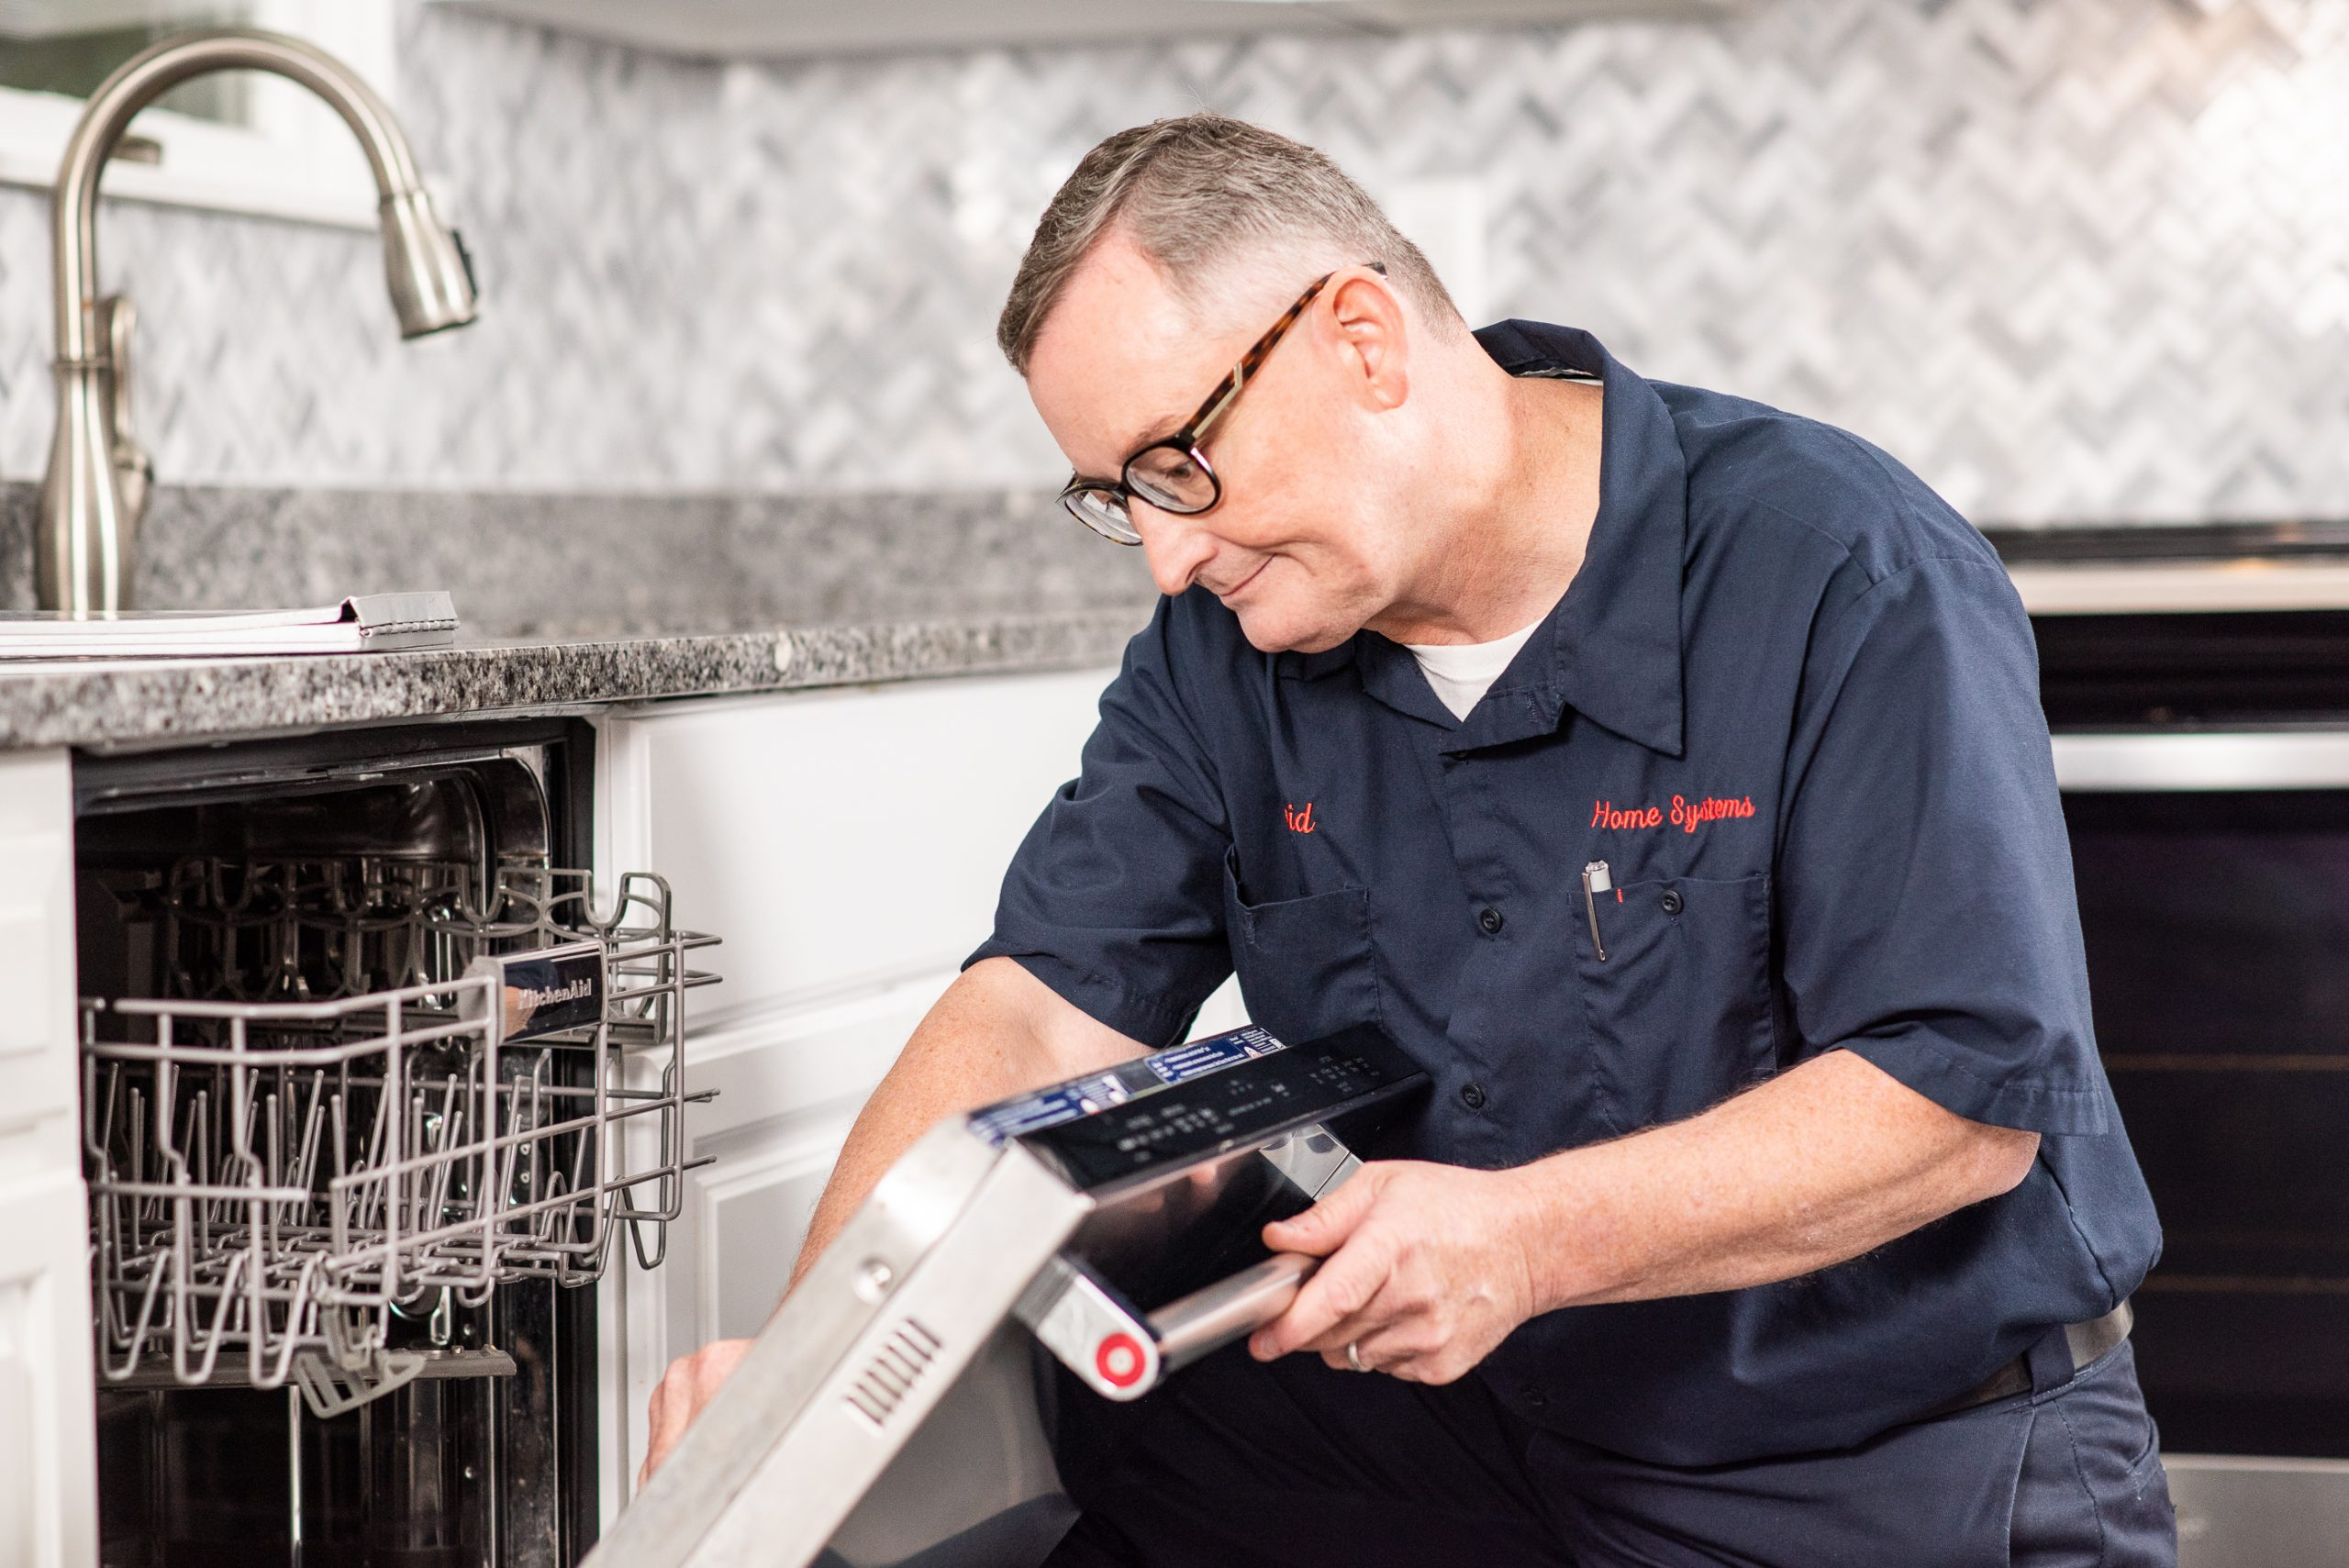 Home Systems Appliance Repair Dishwasher Disposal